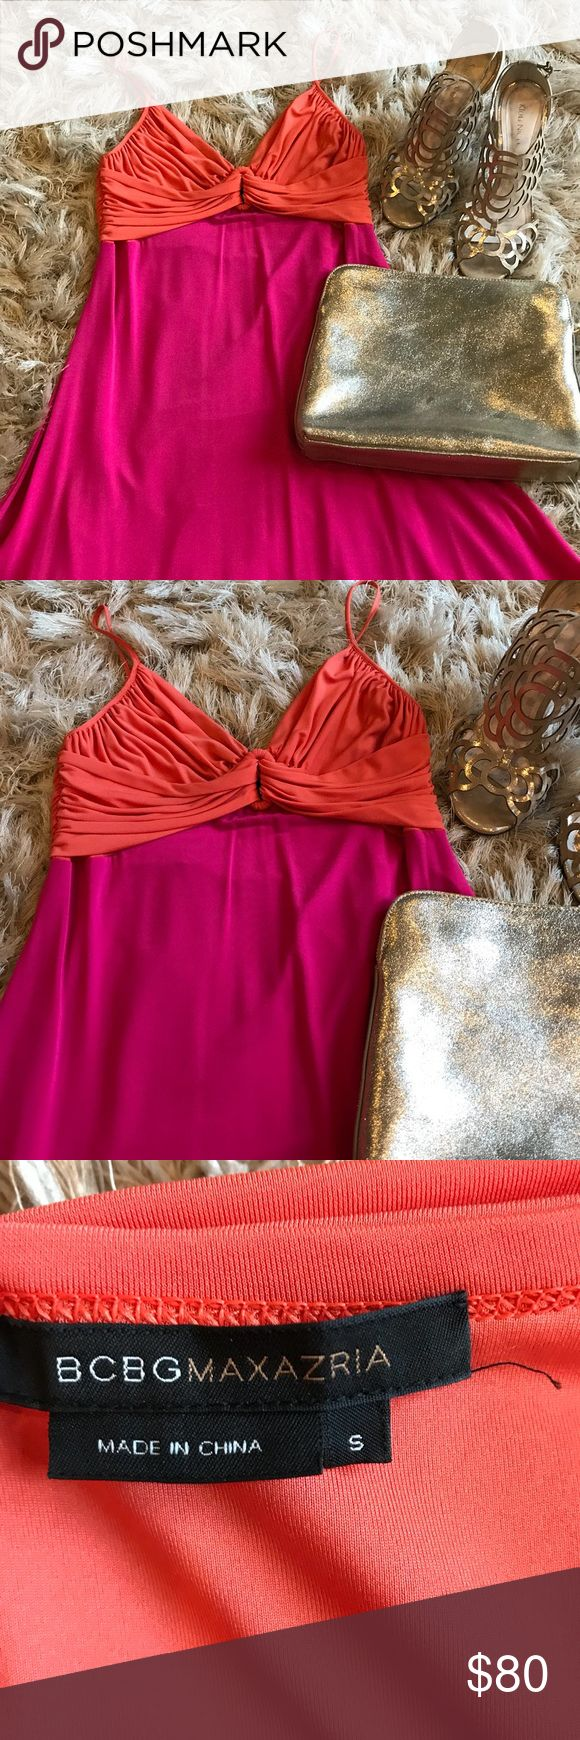 🎉SALE!! 🔥HOT🔥BCBG dress SALE!!🎉 Hot pink and orange BCBG dress. Super comfortable and travels well— jersey material. Adjustable spaghetti straps. Asymmetrical hem. Look great on vacation or a night out in this stunner!! Only worn once.  Like anything else in my closet?  💵 Bundle items to save more and save on shipping!! 📦 BCBG Dresses Asymmetrical